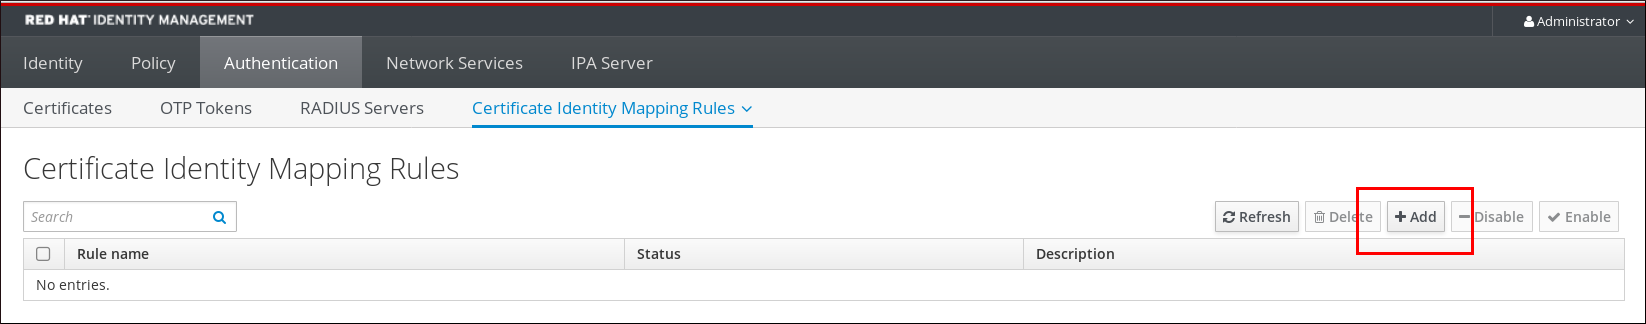 """Screenshot of the IdM Web UI displaying the """"Certificate Identity Mapping Rules"""" sub-tab from the Authentication tab. The """"Add"""" button at the right of the page is highlighted."""